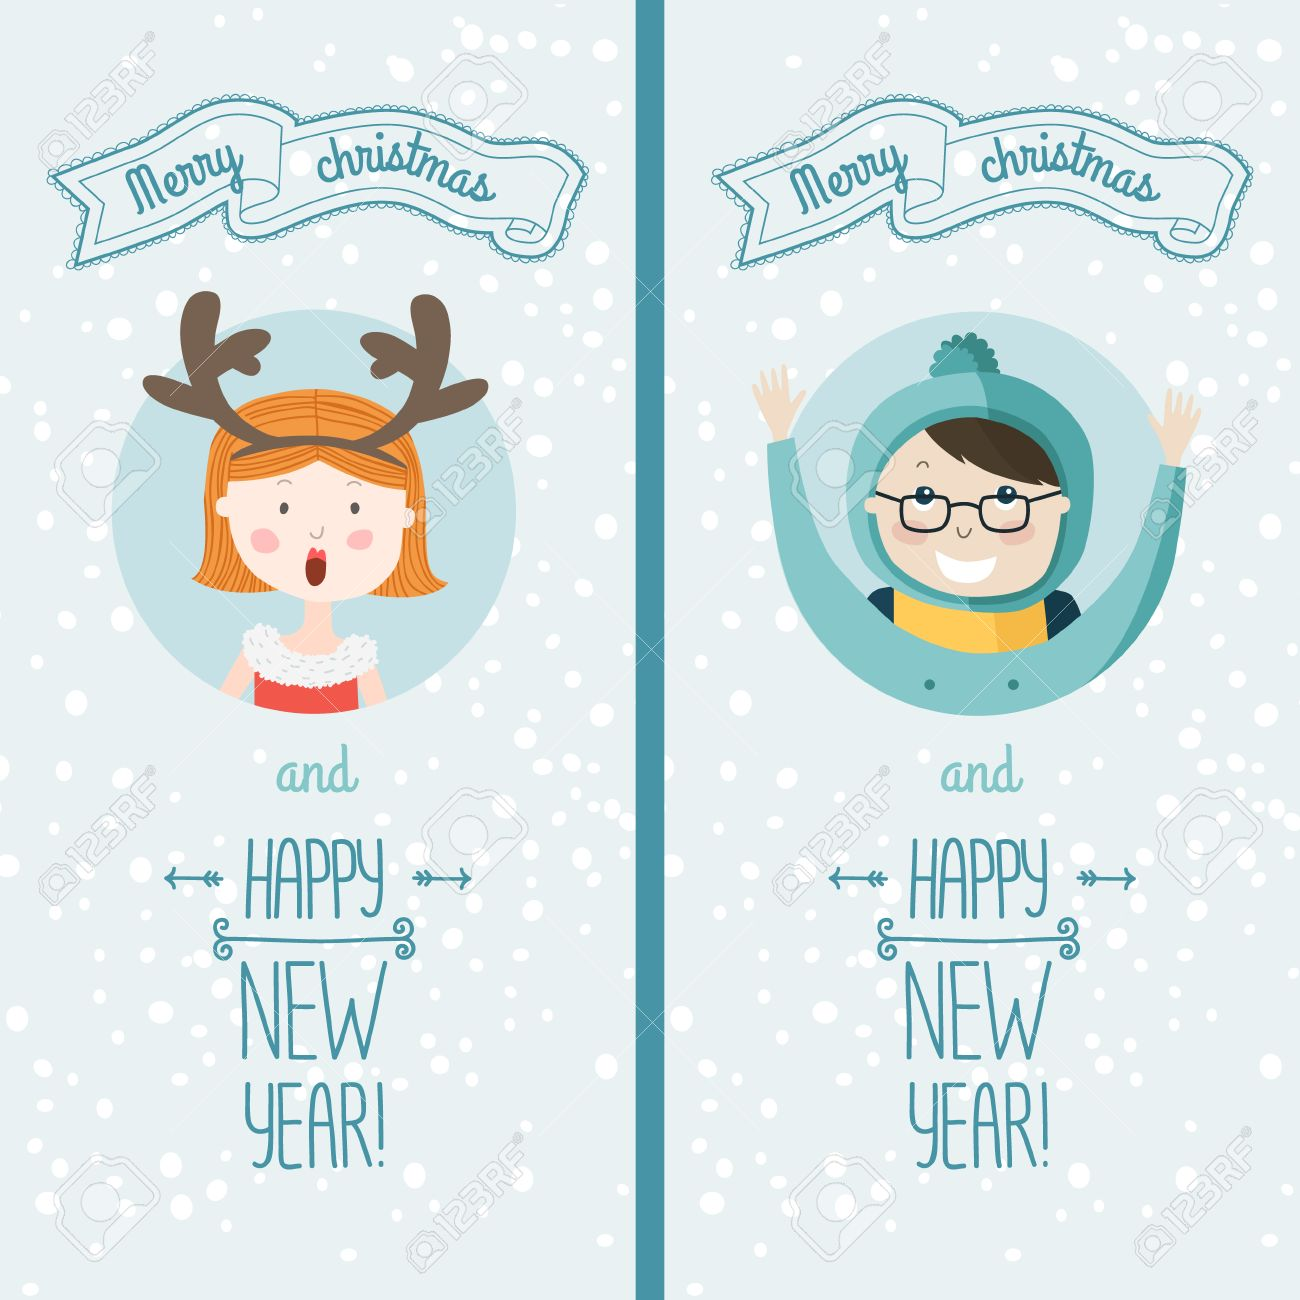 happy new year card with cute kids vector illustration merry christmas and happy new year